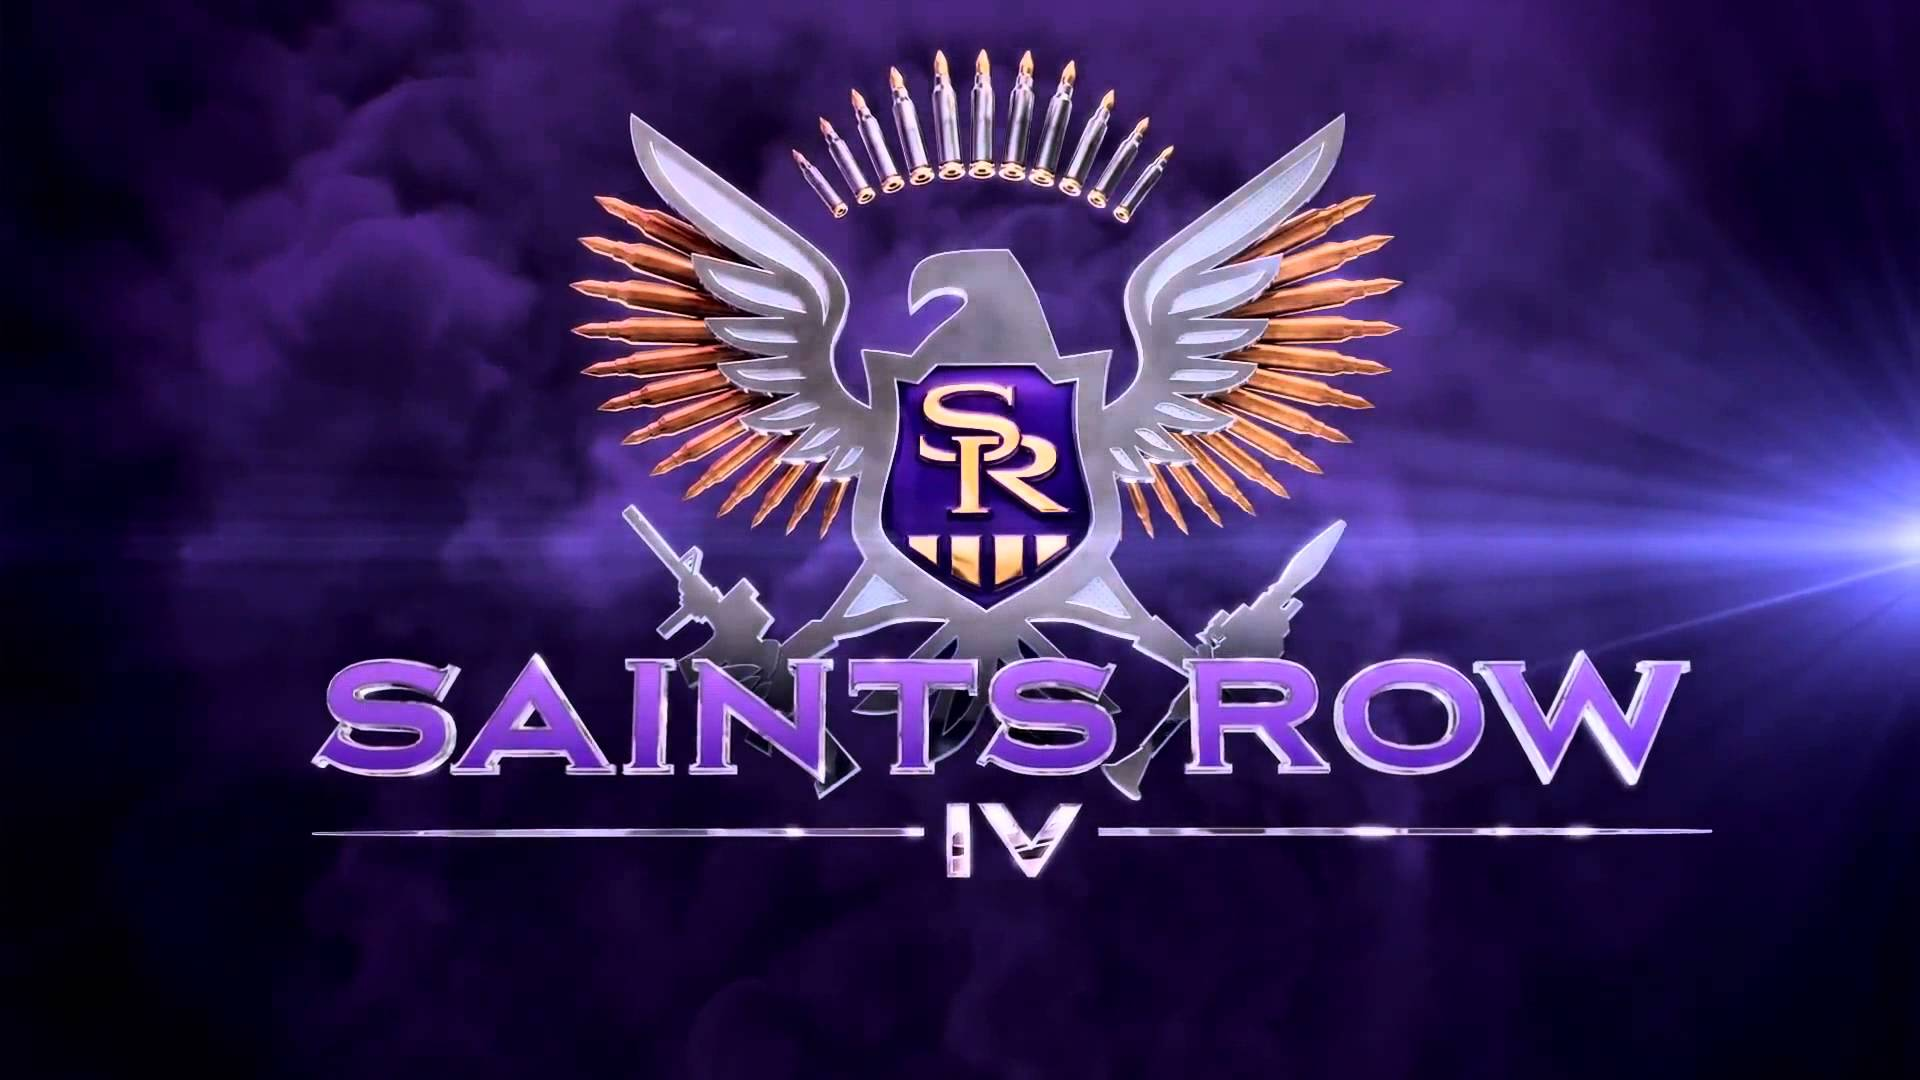 Saints row 4 clipart image free stock Saints row 4 clipart - ClipartFest image free stock